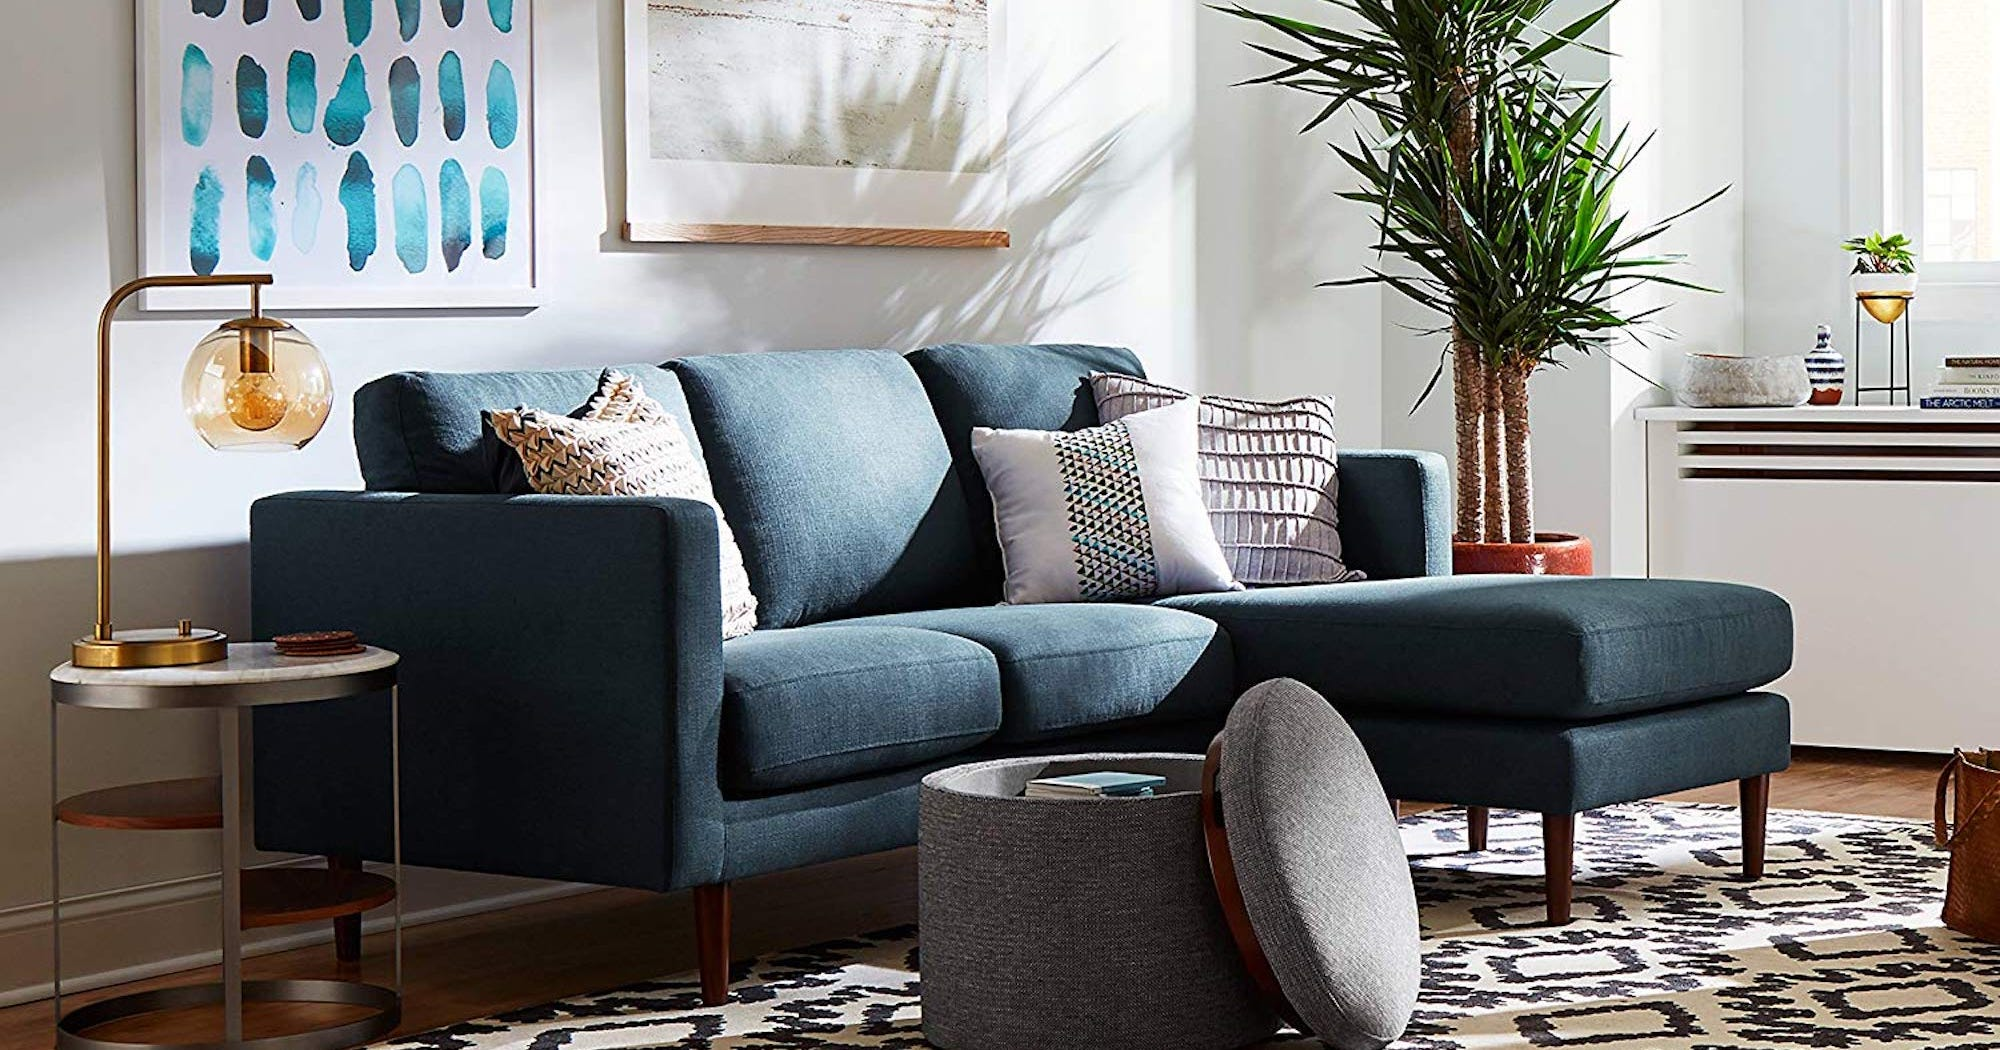 Best Amazon Furniture For Small Spaces Prime Day Deals